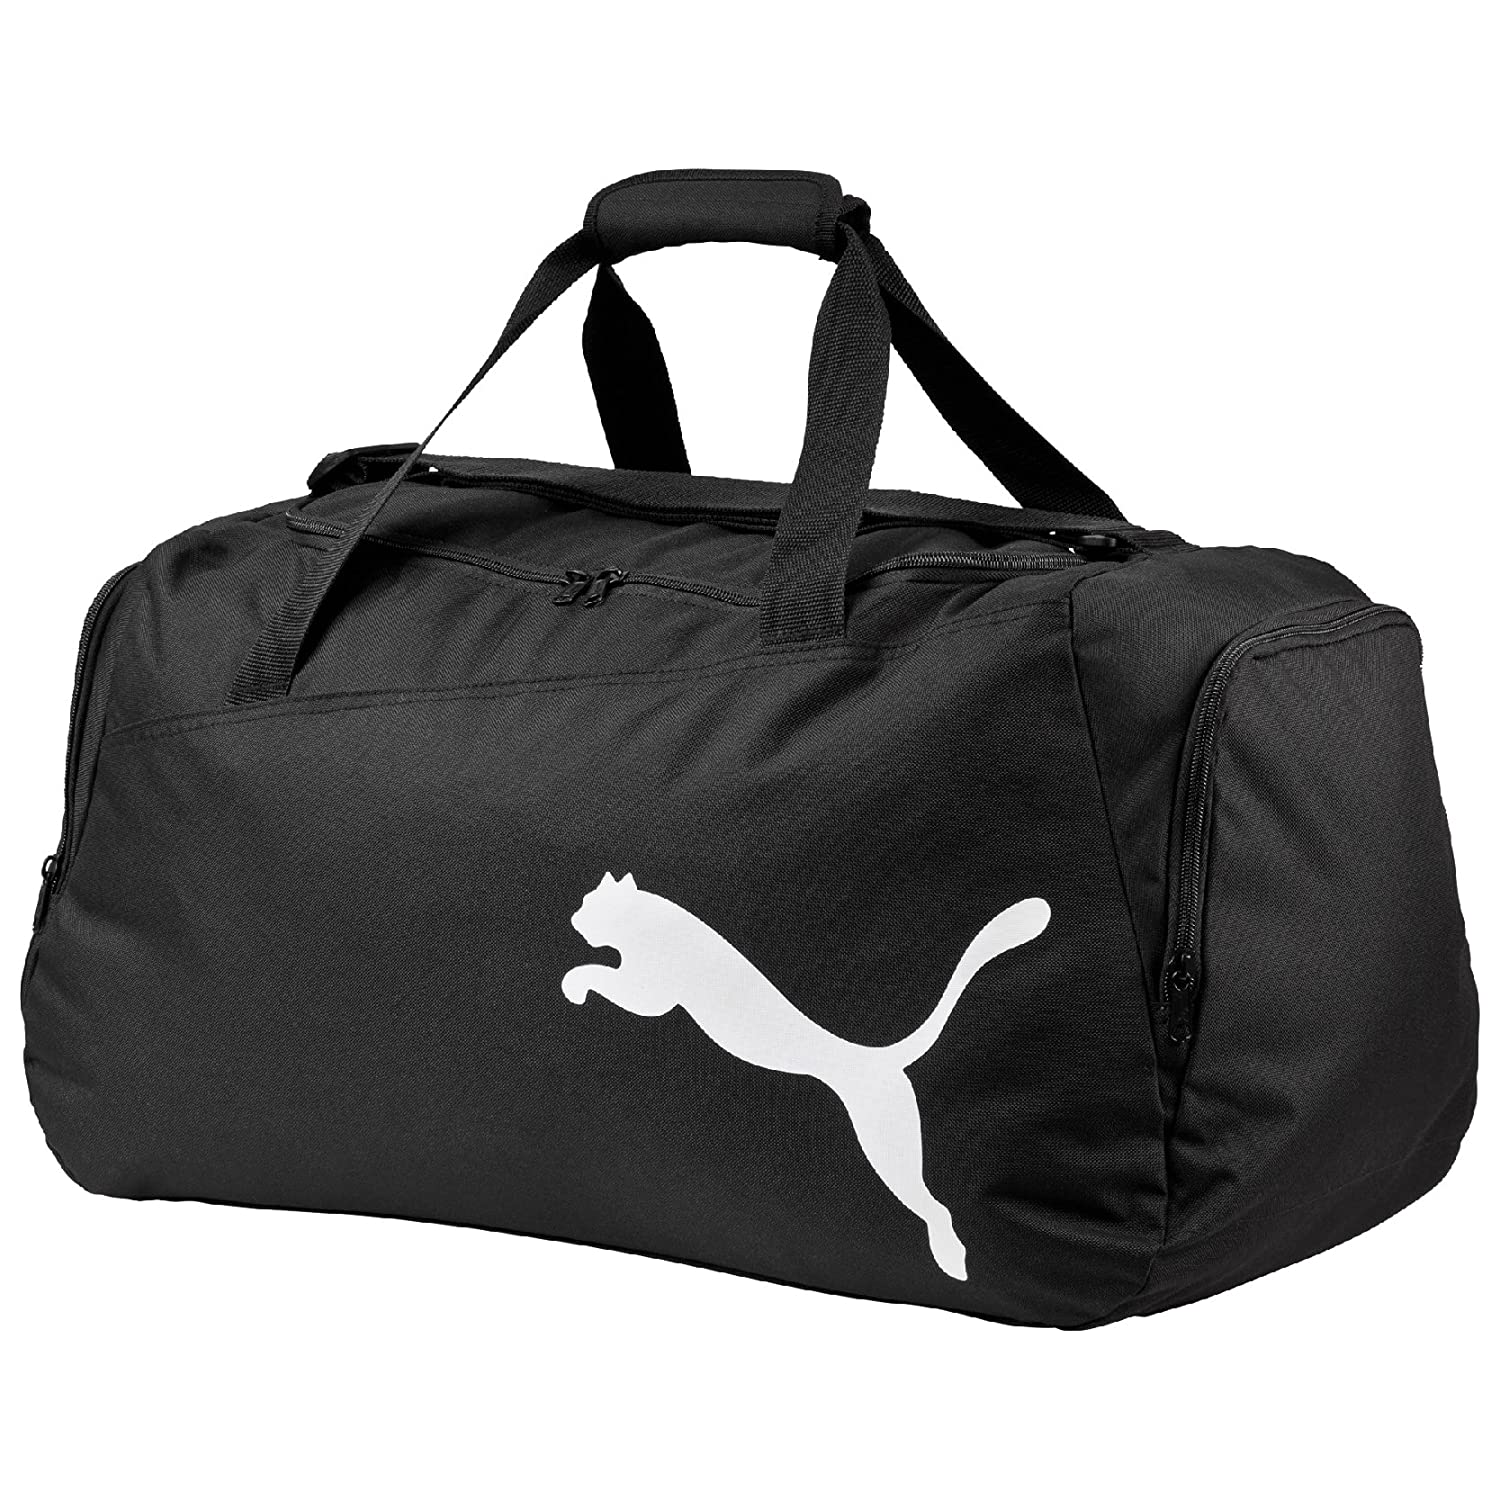 Puma Pro Training, Sac de Sport Grand Format Mixte  Amazon.fr  Sports et  Loisirs e0d0f71bde